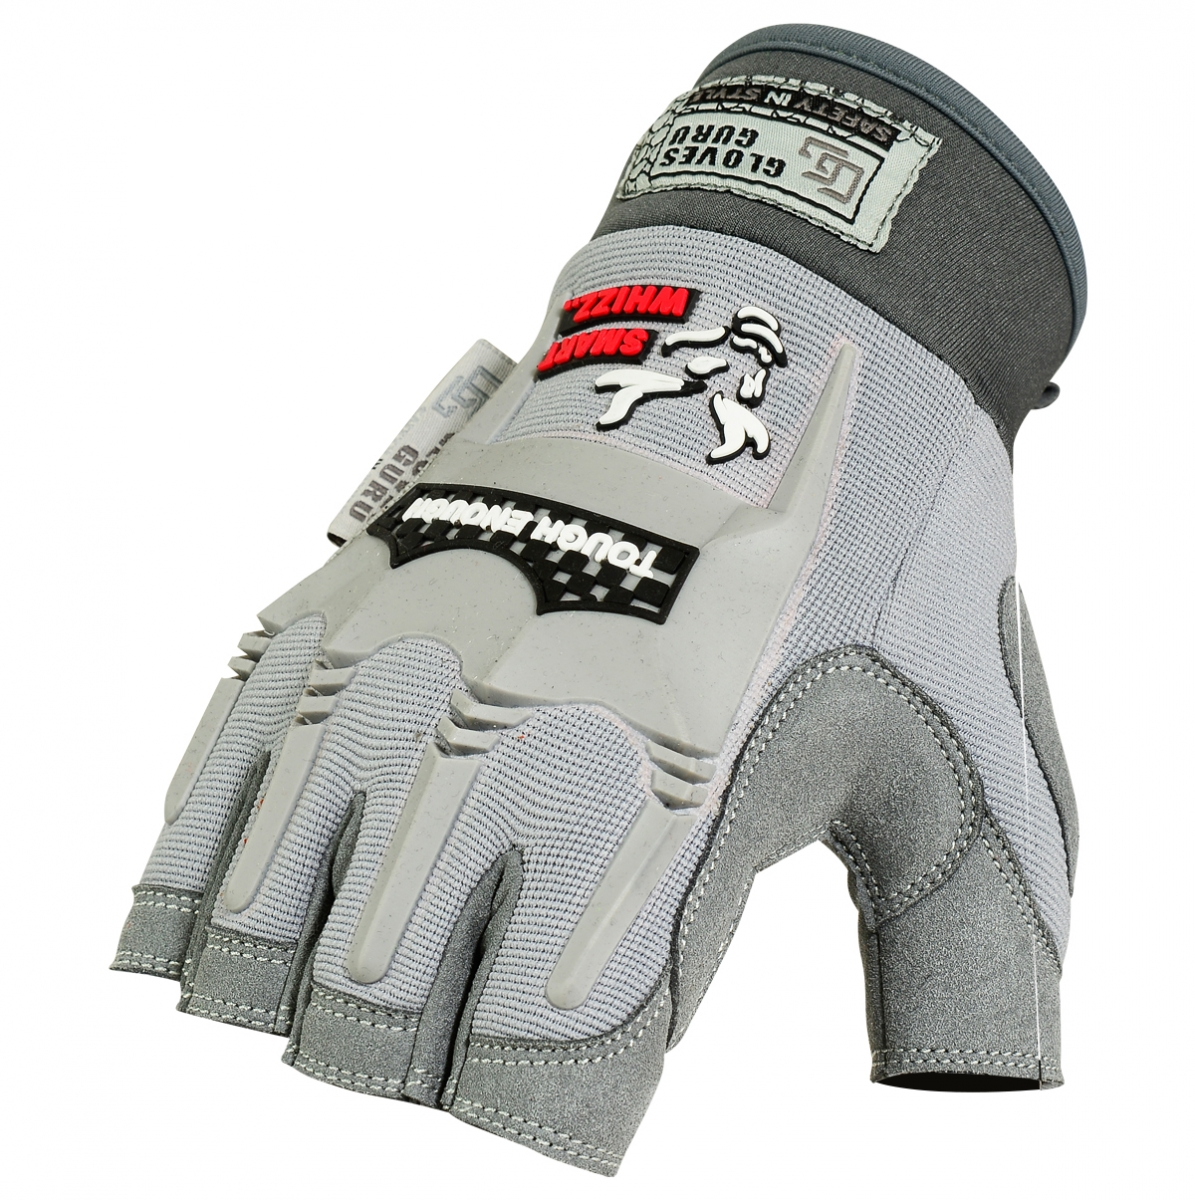 Fingerless impact gloves - Safety At Work Mechanics Gloves Article No Pe 4100 A